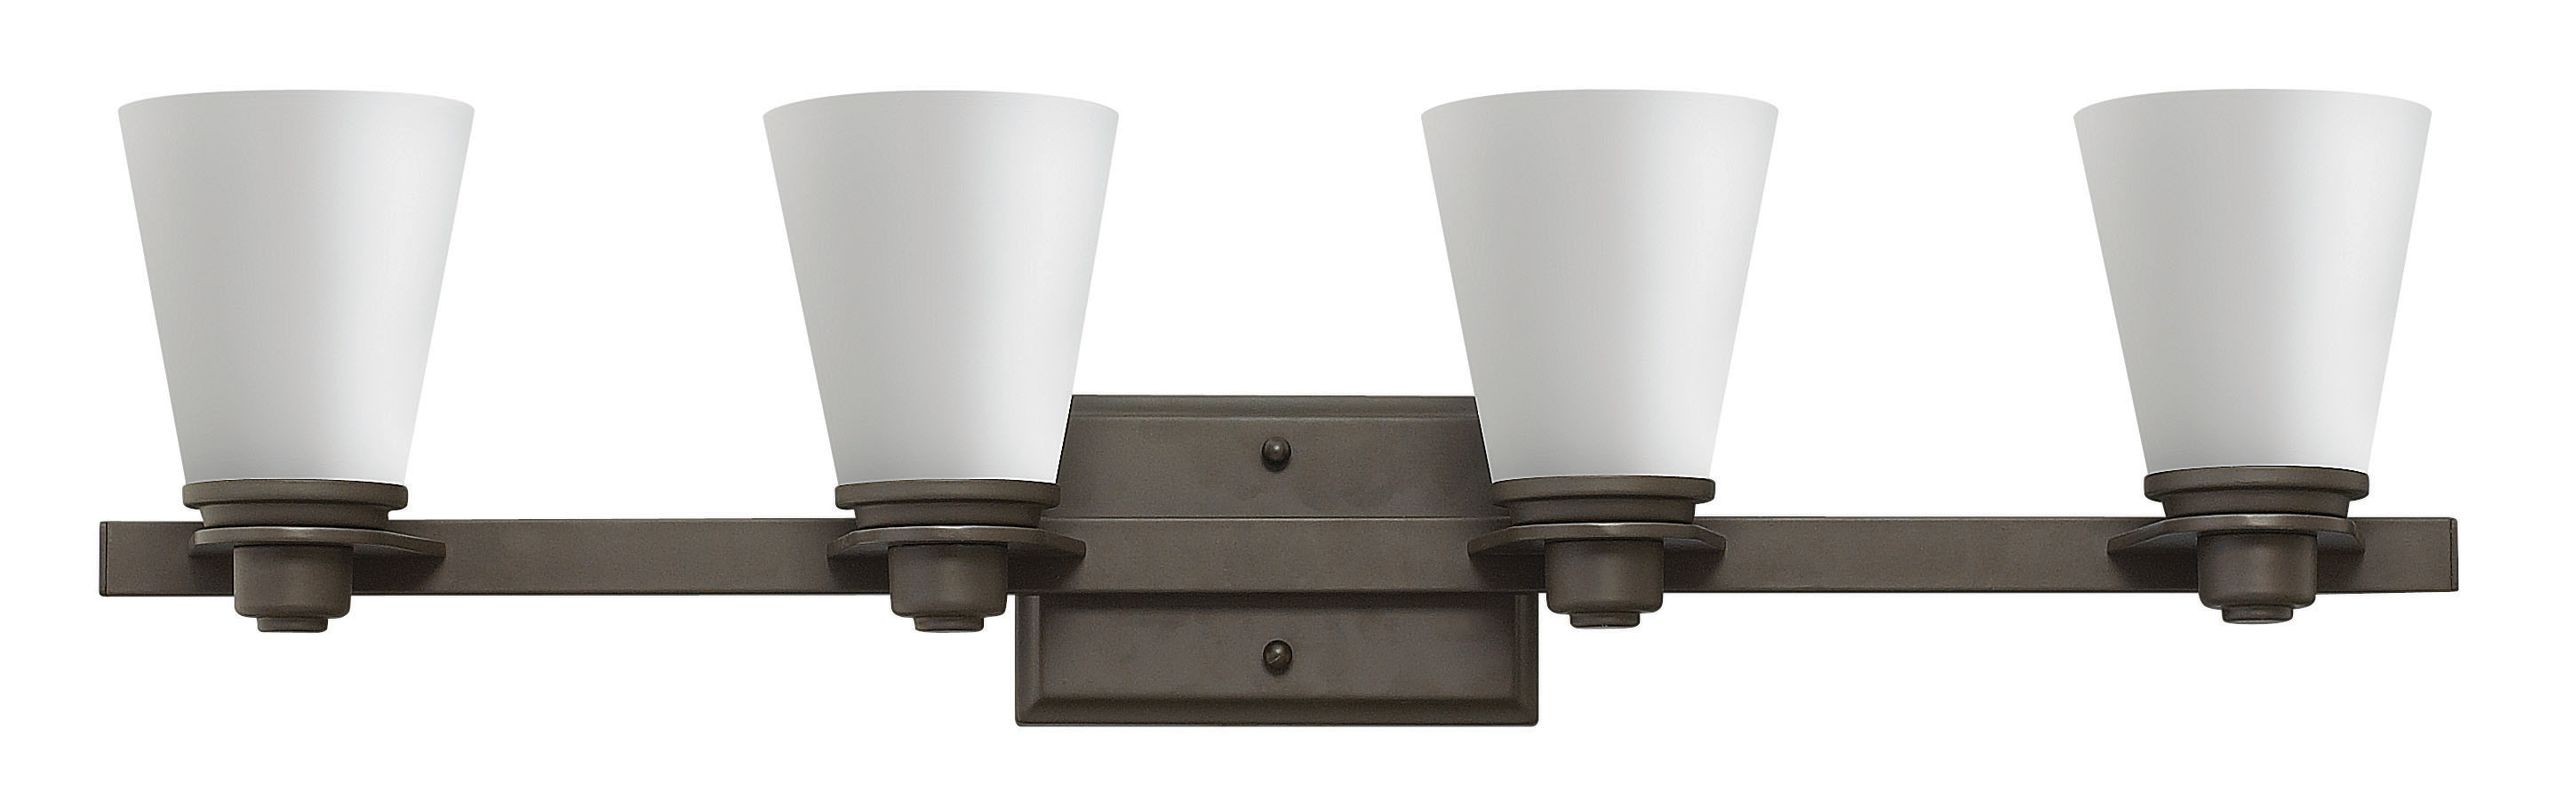 Hinkley Lighting 5554-GU24 4 Light Title 24 Fluorescent Bathroom Sale $299.00 ITEM#: 2635567 MODEL# :5554KZ-GU24 UPC#: 640665555646 :